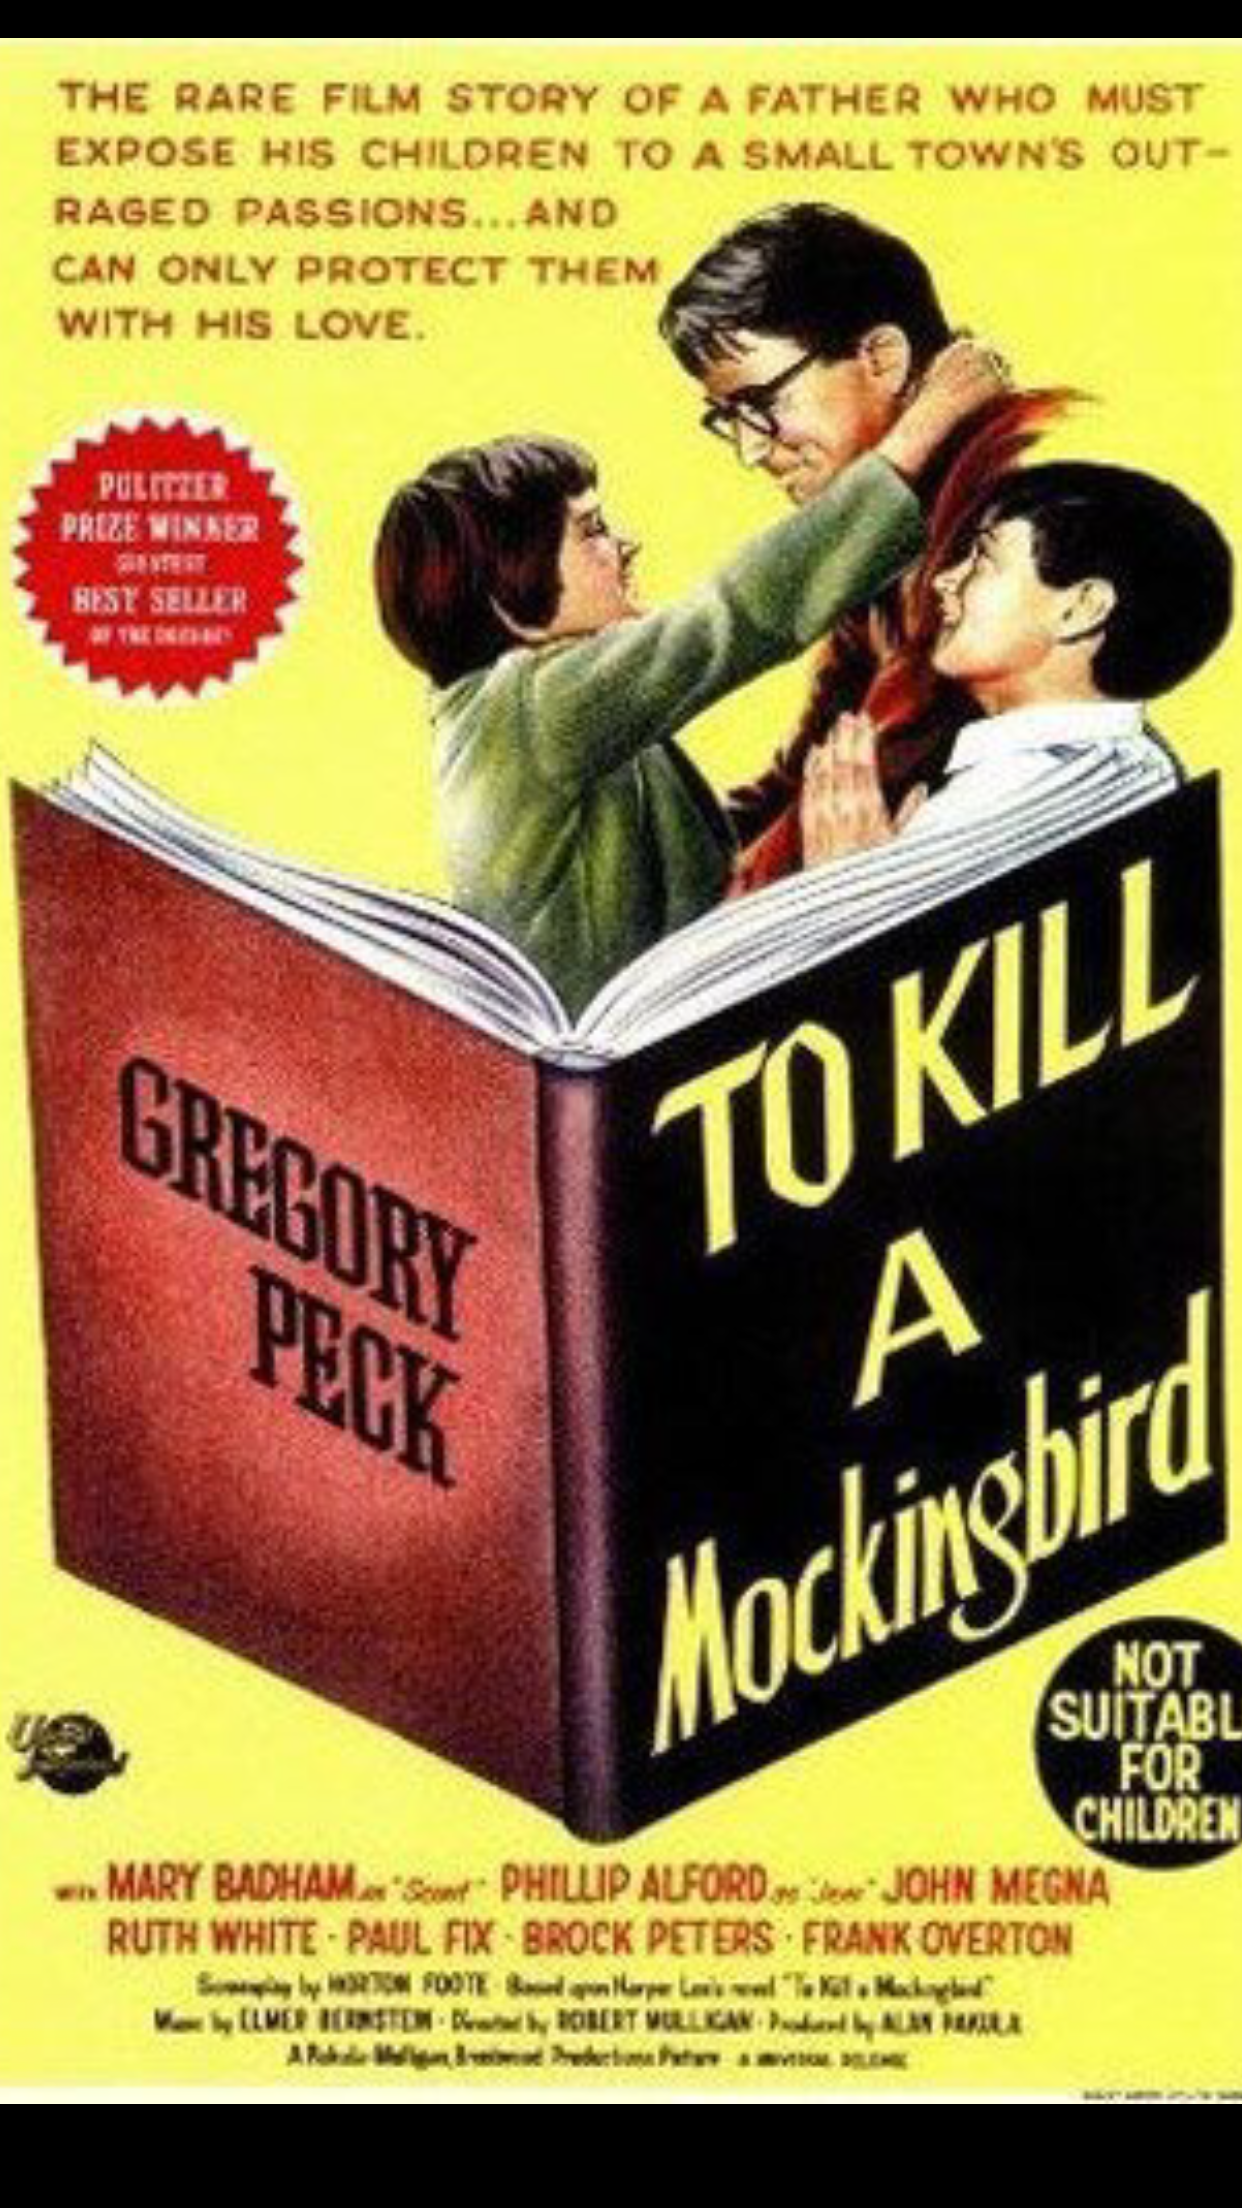 a critique of the movie adaptation of to kill a mockingbird To kill a mockingbird is my favorite book and initially, when i learned there was a movie adaptation, i was quite hesitant on watching it there are so many great books that are not given enough justice on film and i wouldn't want to see to kill a mockingbird fimed just like the rest.